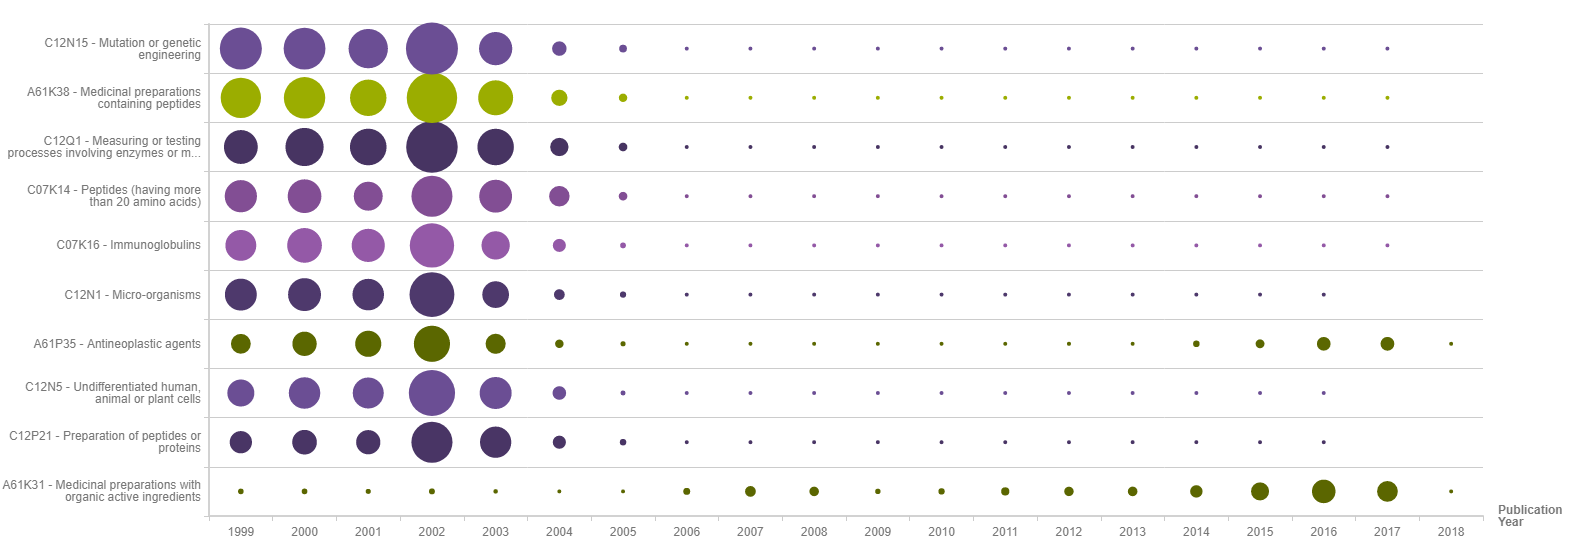 yearly patenting trend of published patents by technology area - Incyte